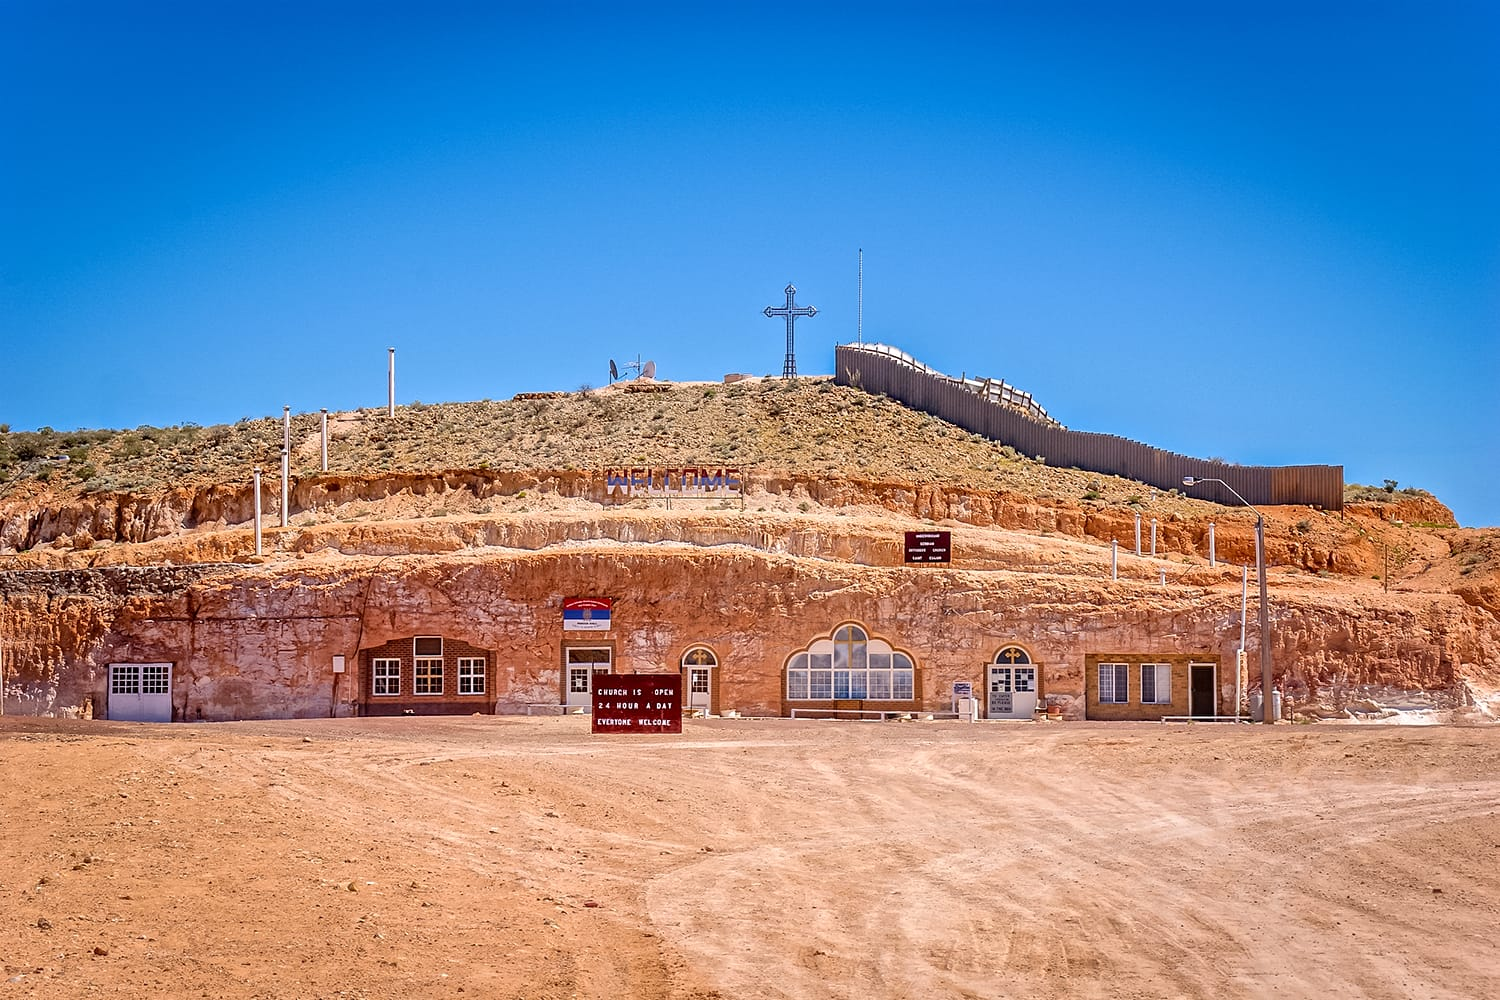 Underground Serbian Church. Coober Pedy is an opal mining town and known for its underground dwellings, built against the heat, known as dugouts. Australia.